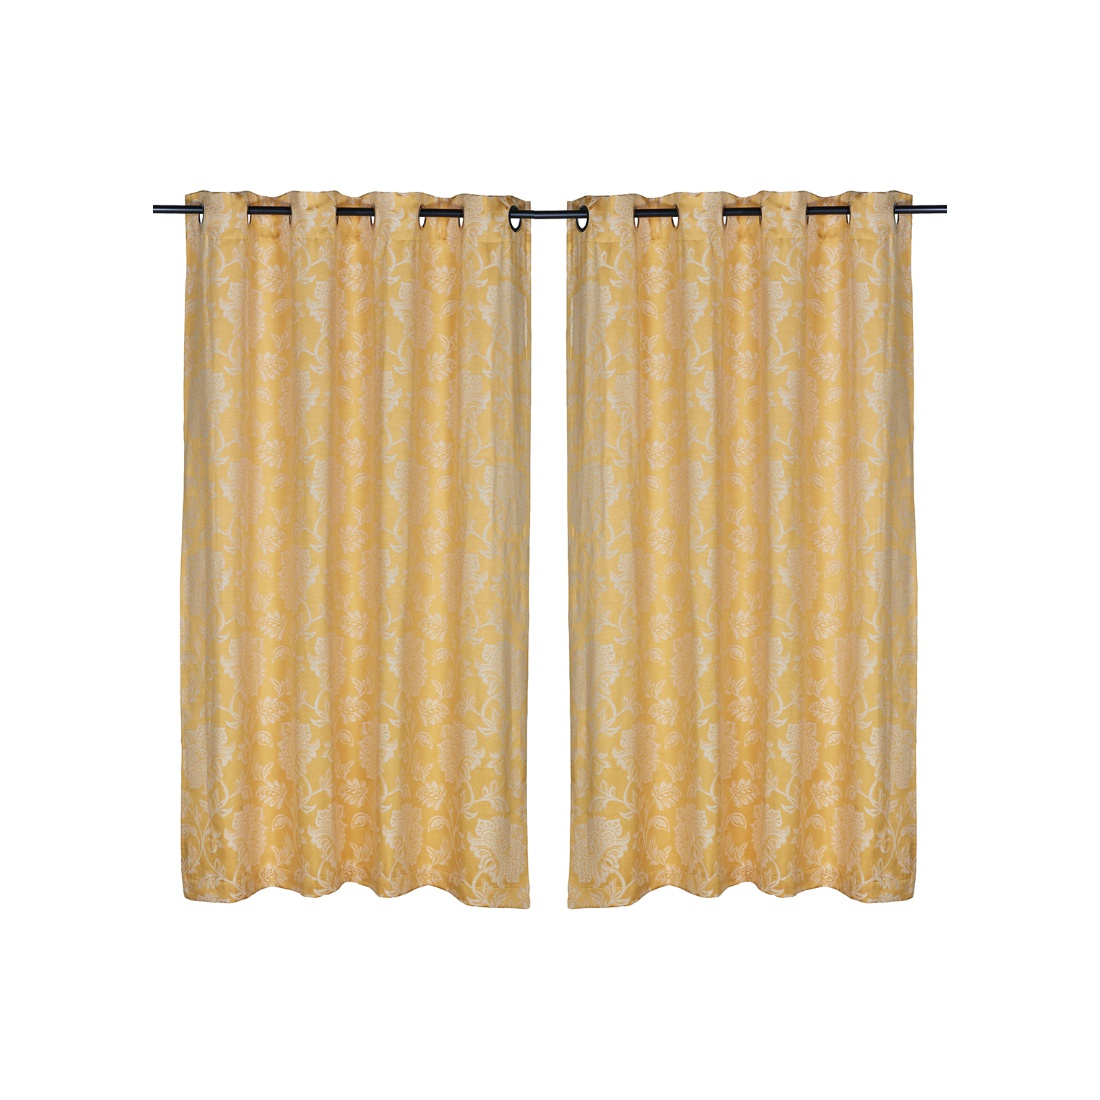 Fiesta Polyester Window Curtains in Mustard Colour by Living Essence